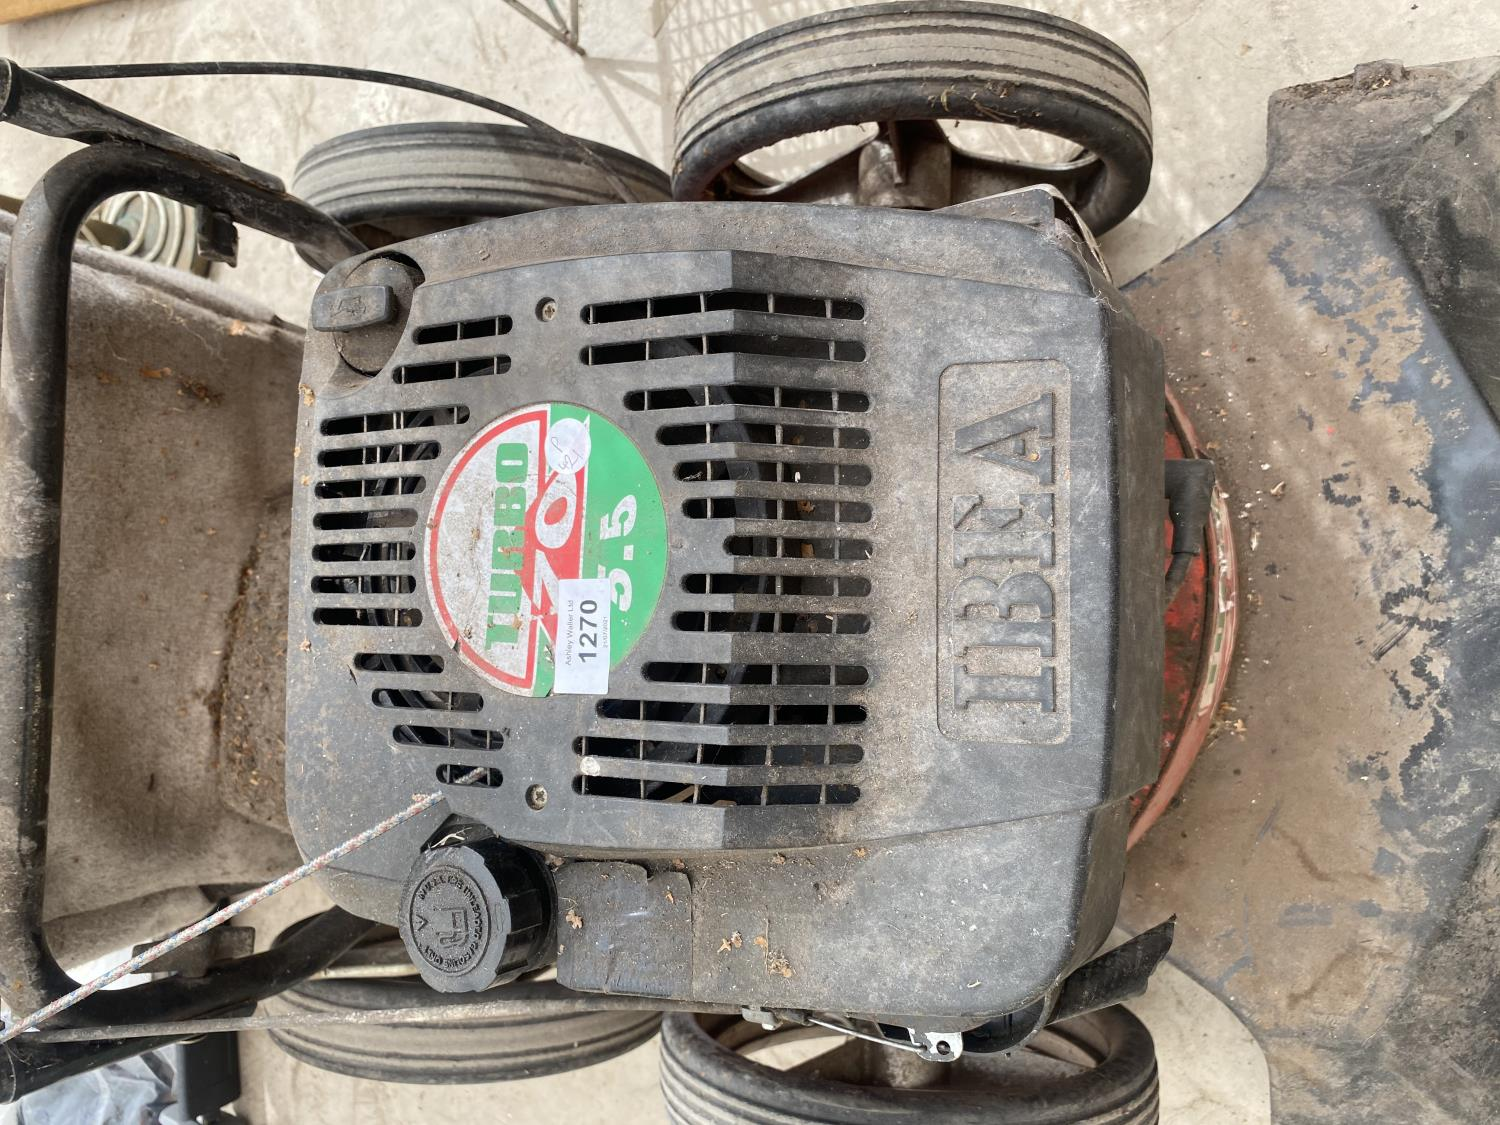 AN IBEA GARDEN HOOVER WITH TURBO 70 PETROL ENIGINE - Image 3 of 5